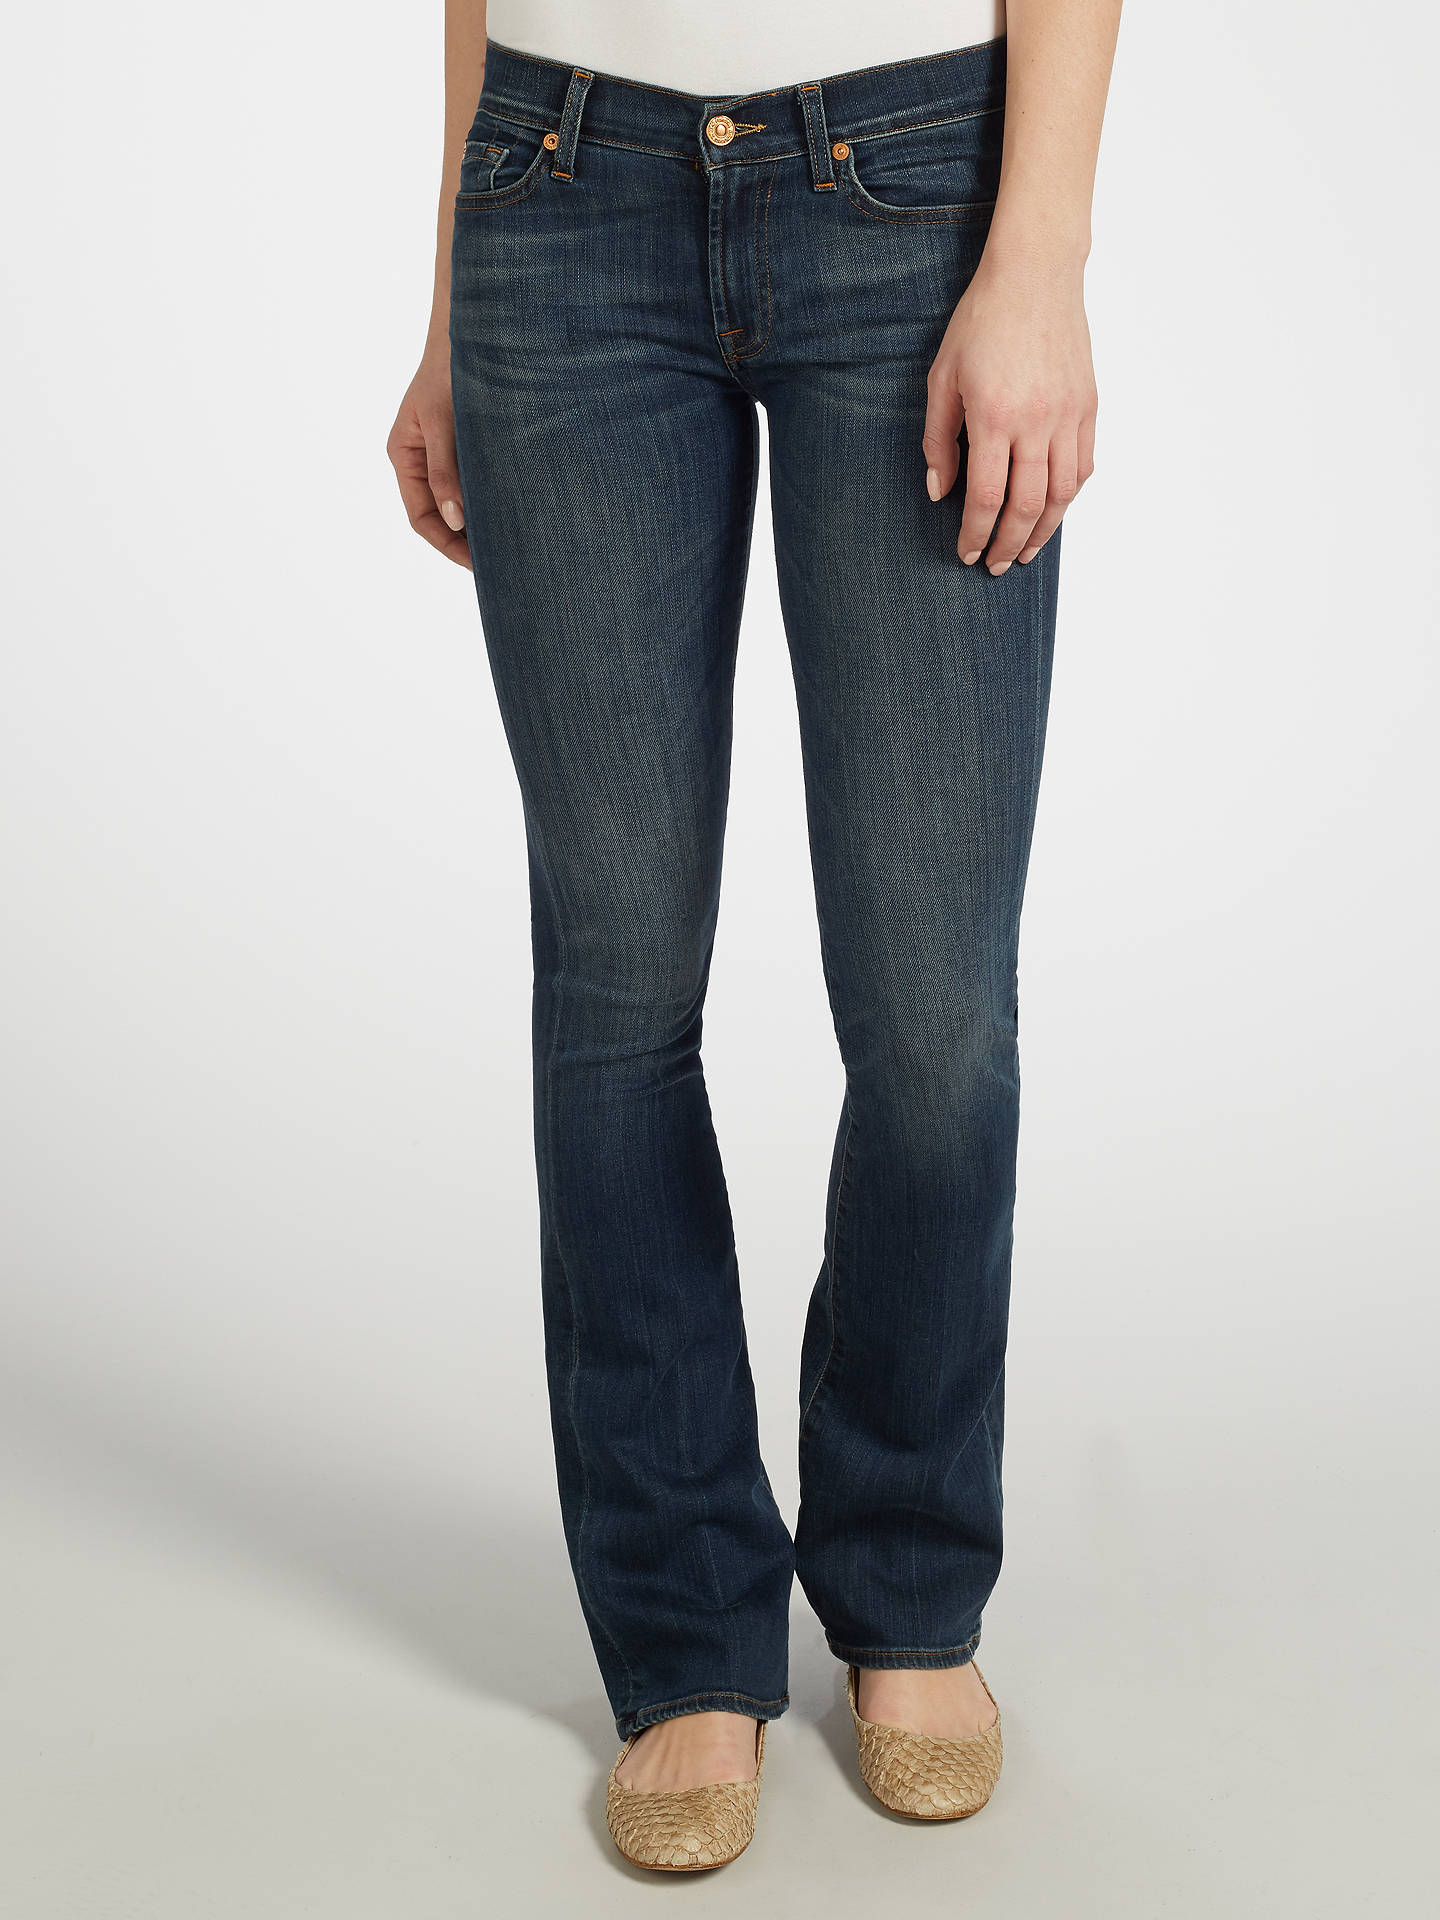 b1ee598430f3 Buy 7 For All Mankind Mid-Rise Bootcut Jeans